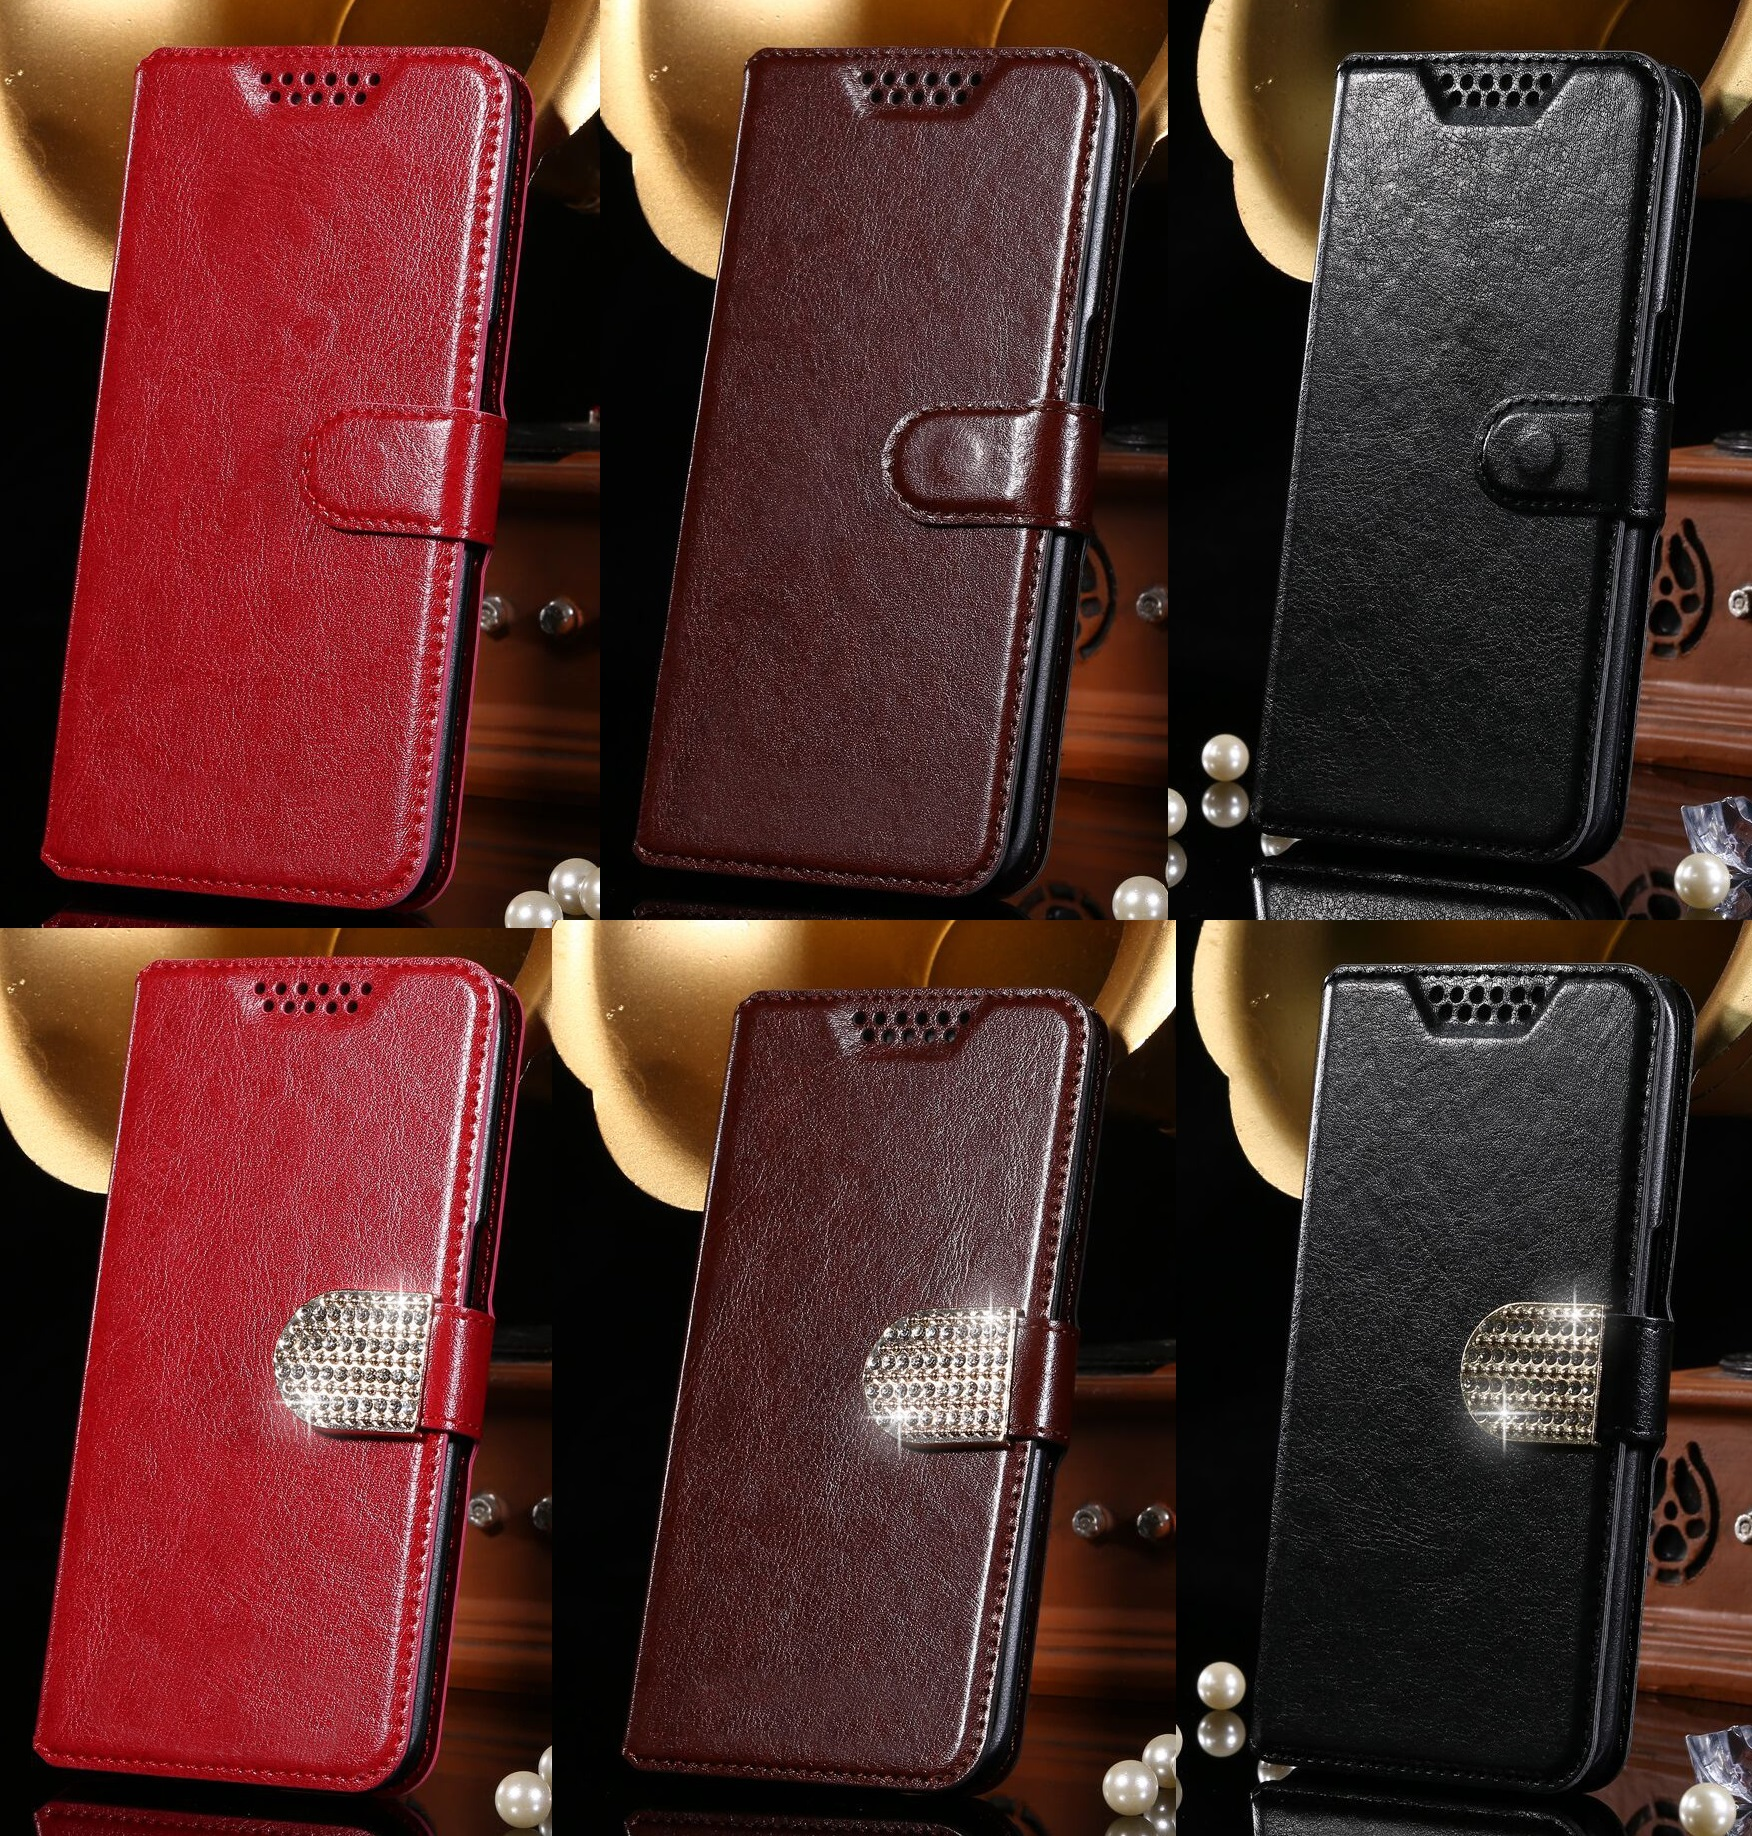 Luxury Wallet PU Case for <font><b>Gretel</b></font> GT6000 Case Ultra-thin Flip Leather Cover Book Card Slots for <font><b>Gretel</b></font> <font><b>GT</b></font> <font><b>6000</b></font> image